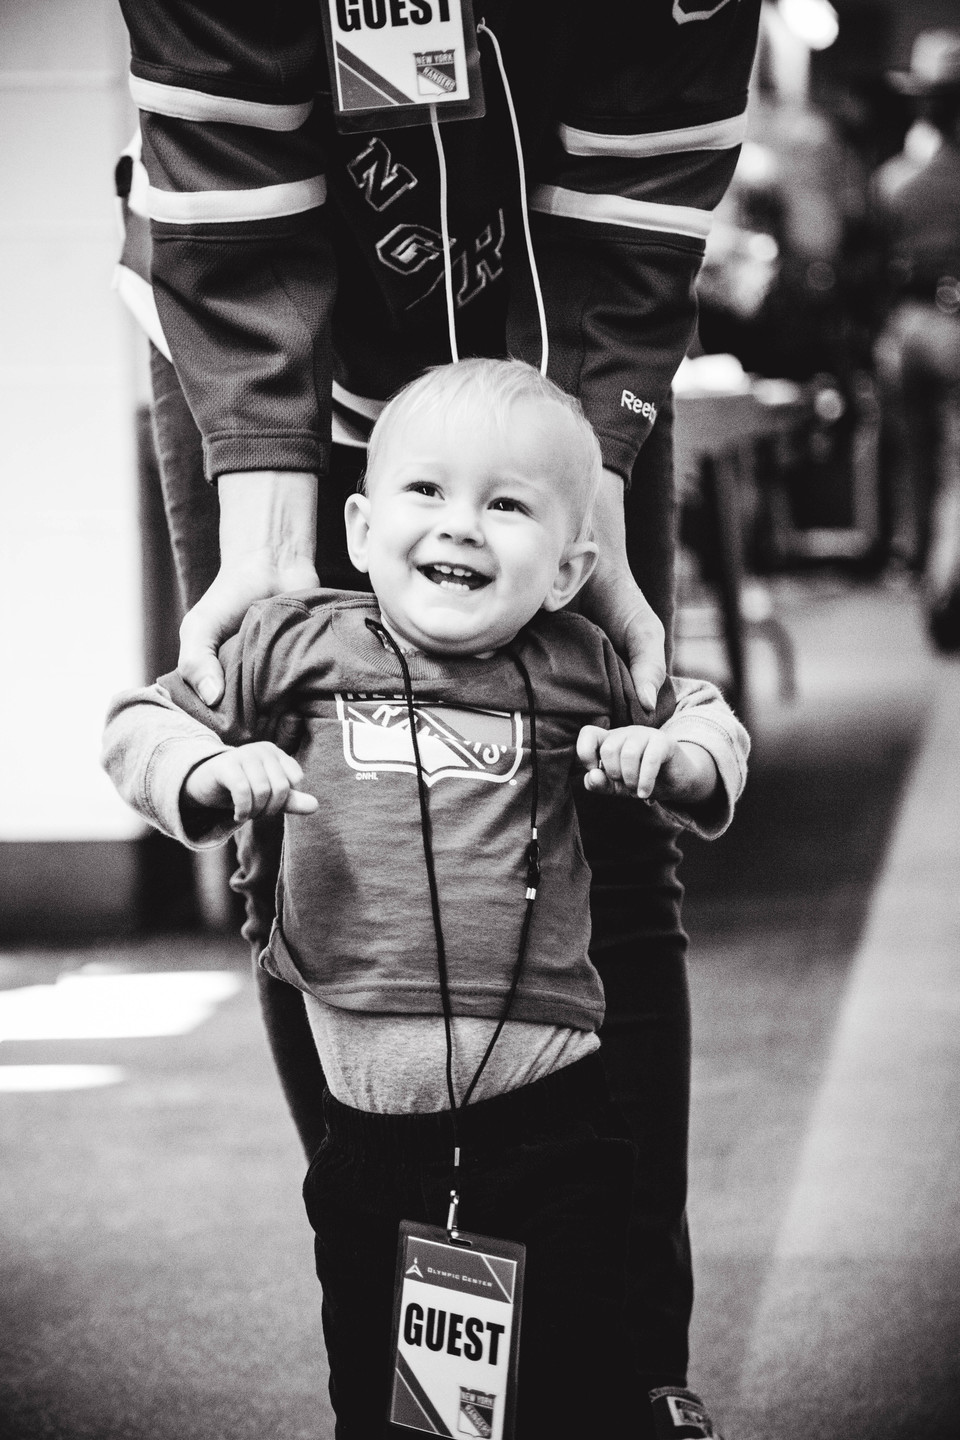 Male toddler wearing rangers shirt with a guest pass in black and white